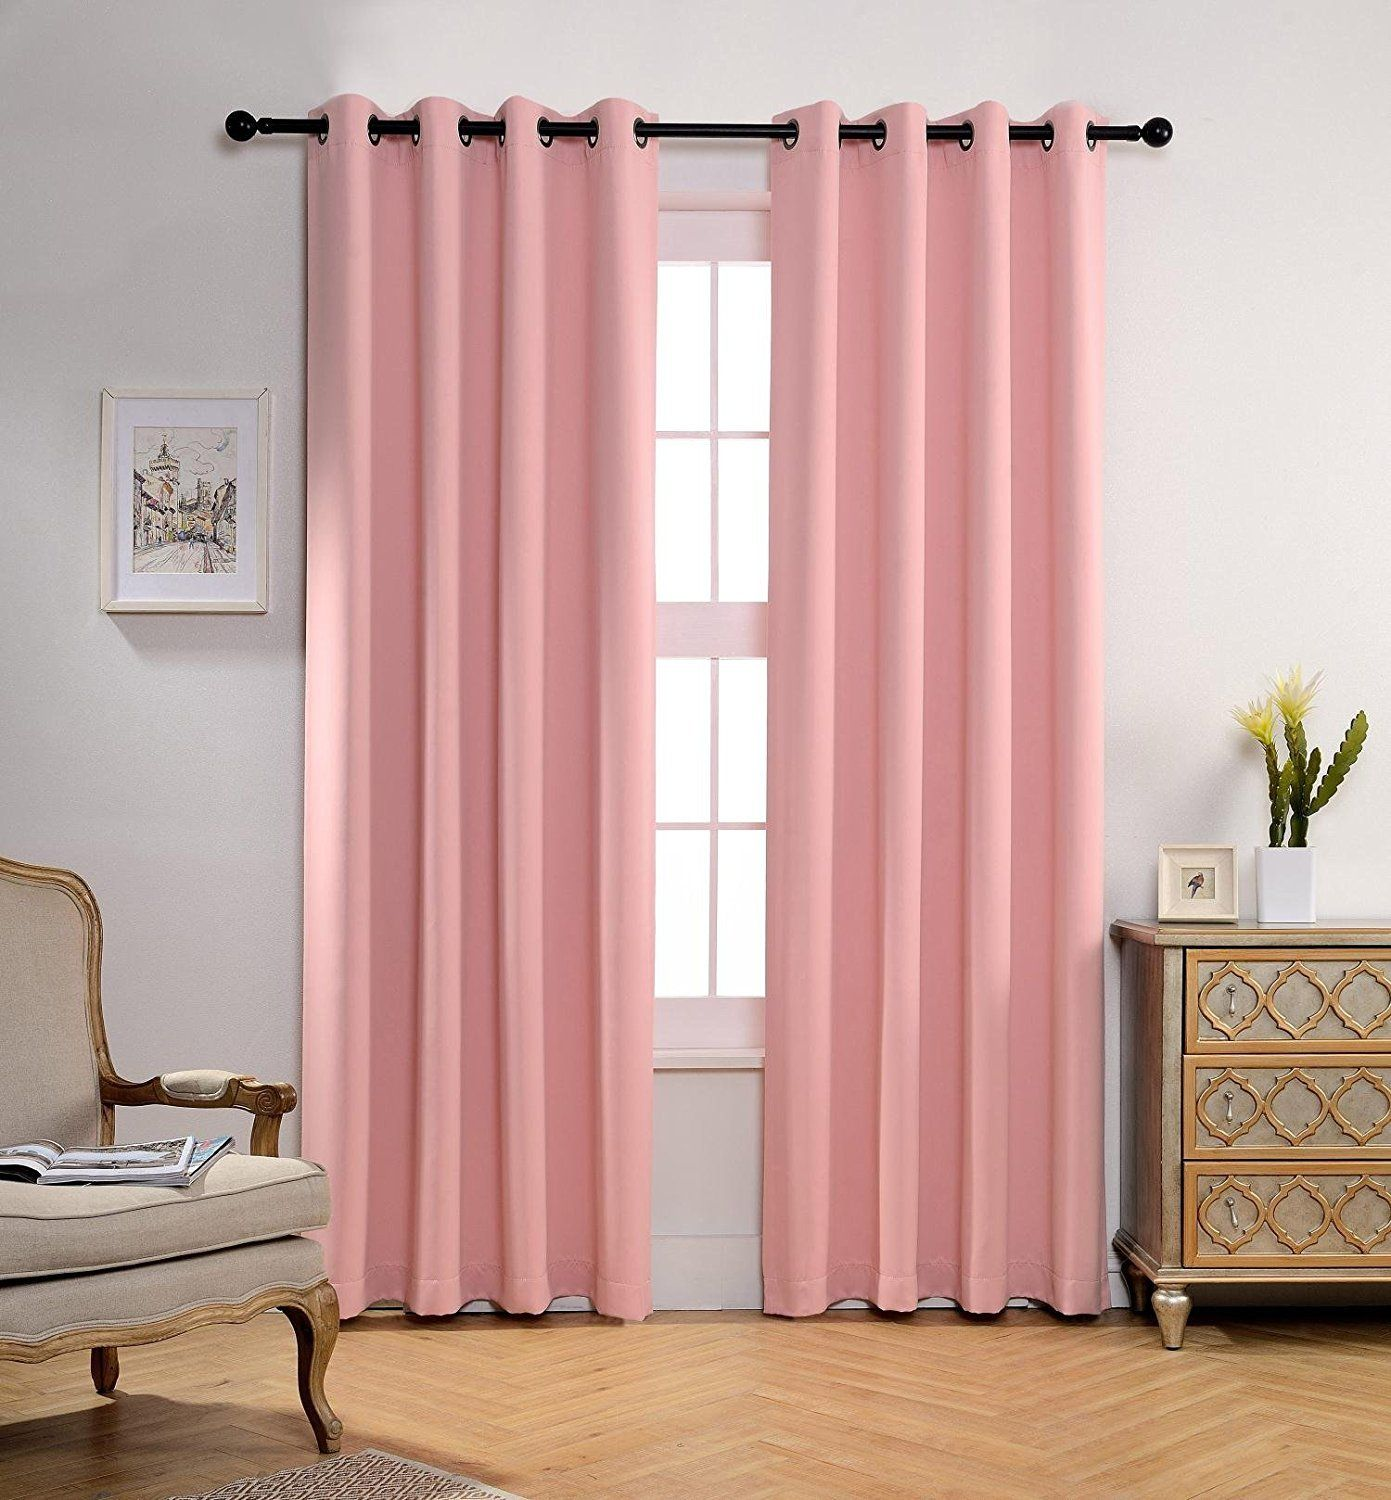 Room Darkening Thermal Insulated Blackout Grommet Window Curtain Panels Set W Tie Backs Insulated Blackout Curtains Curtains Thermal Insulated Blackout Curtains